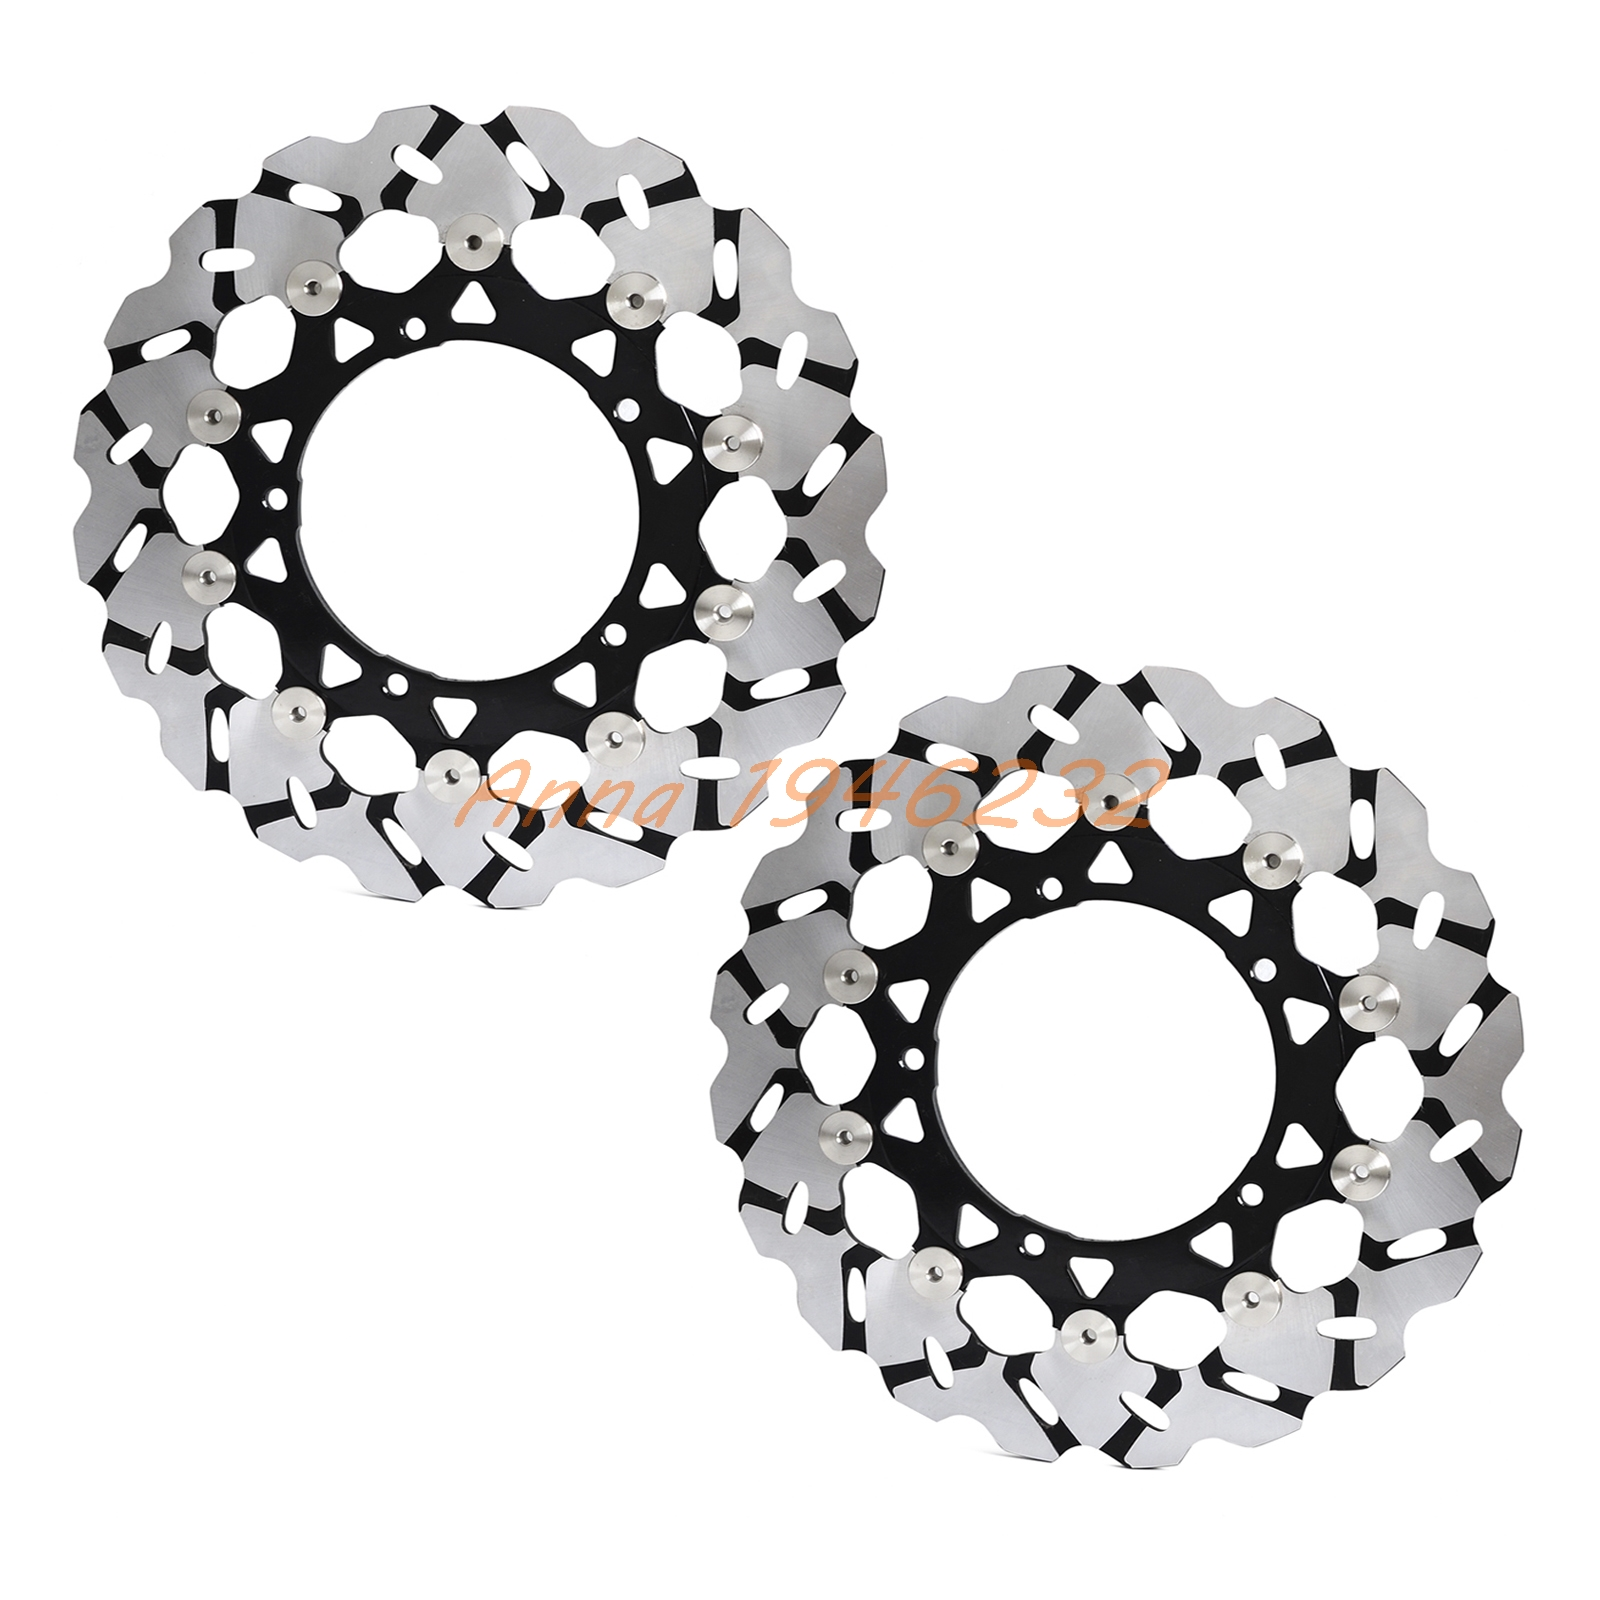 New Motorcycle Front Rotor Brake Disc For Yamaha FZ1 1000 06-14 FAZER 1000 06-12 ABS 07-12 YZF R1 1000 04-06